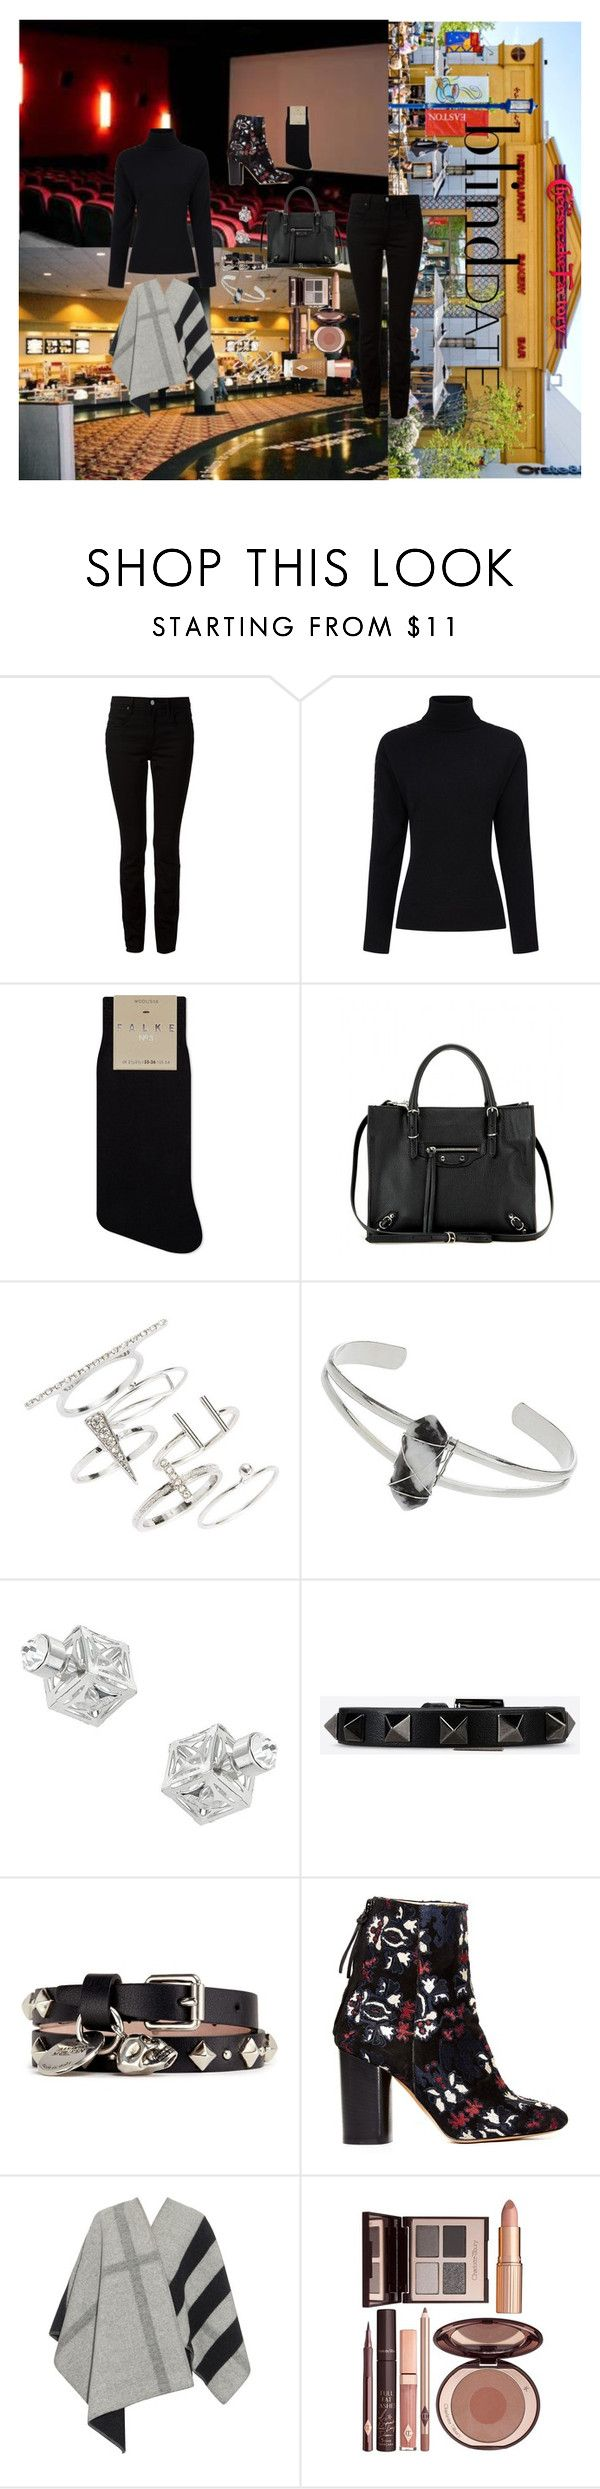 """Blind Date: Cheesecake Factory and a Movie"" by atho-12345 ❤ liked on Polyvore featuring T By Alexander Wang, Preen, Falke, Balenciaga, Topshop, Valentino, Alexander McQueen, Isabel Marant, Burberry and Charlotte Tilbury"